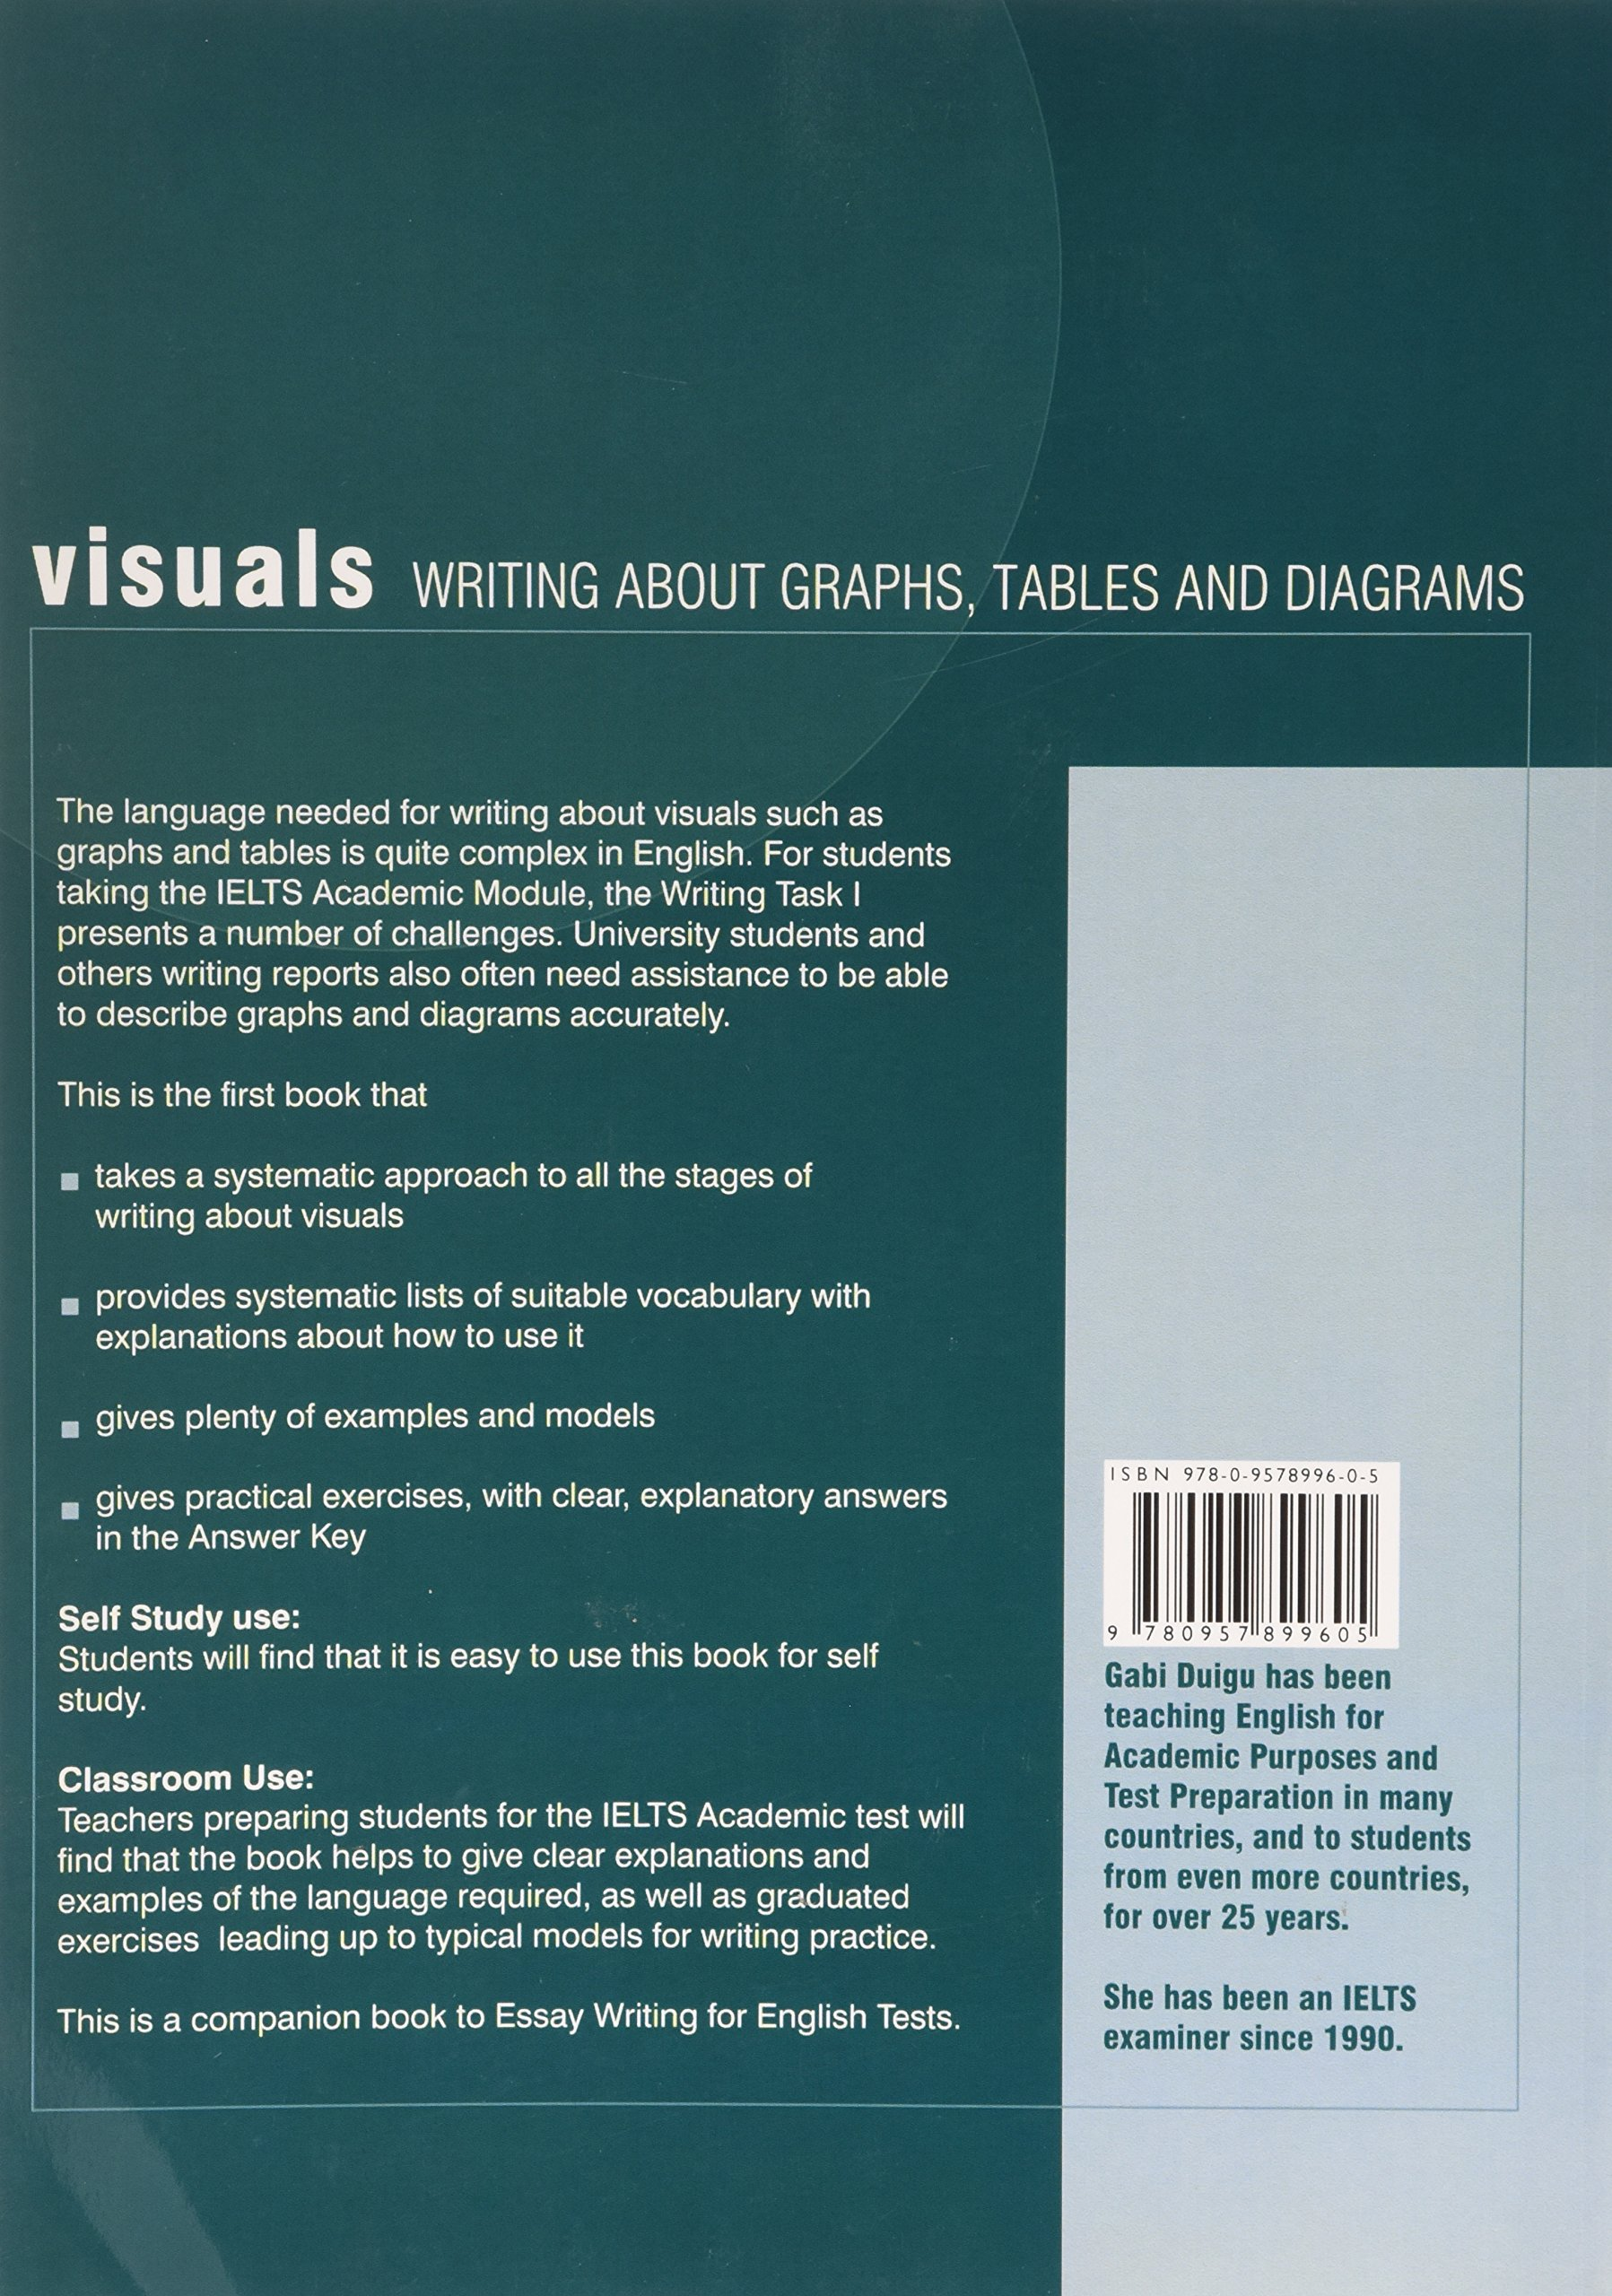 visuals writing about graphs tables and diagrams gabi duigu visuals writing about graphs tables and diagrams gabi duigu 9780957899605 com books